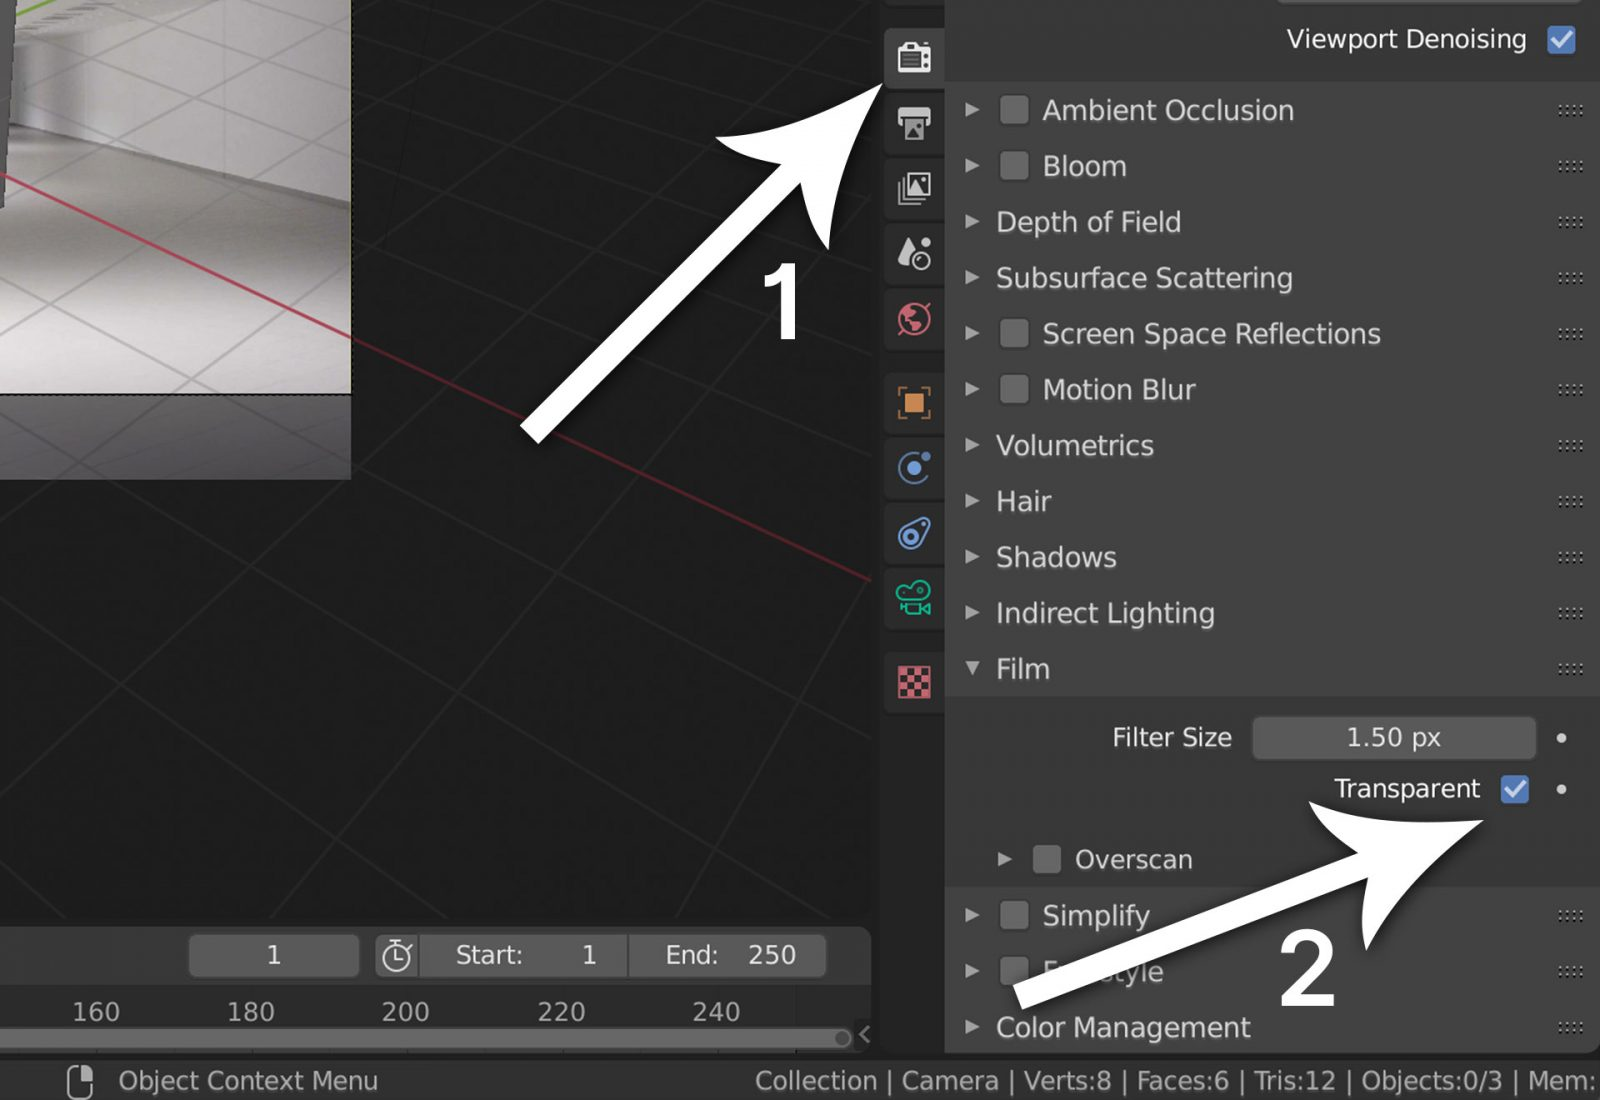 Render a Background Image Using Blender 2.8 - step 17 set render settings to transparent